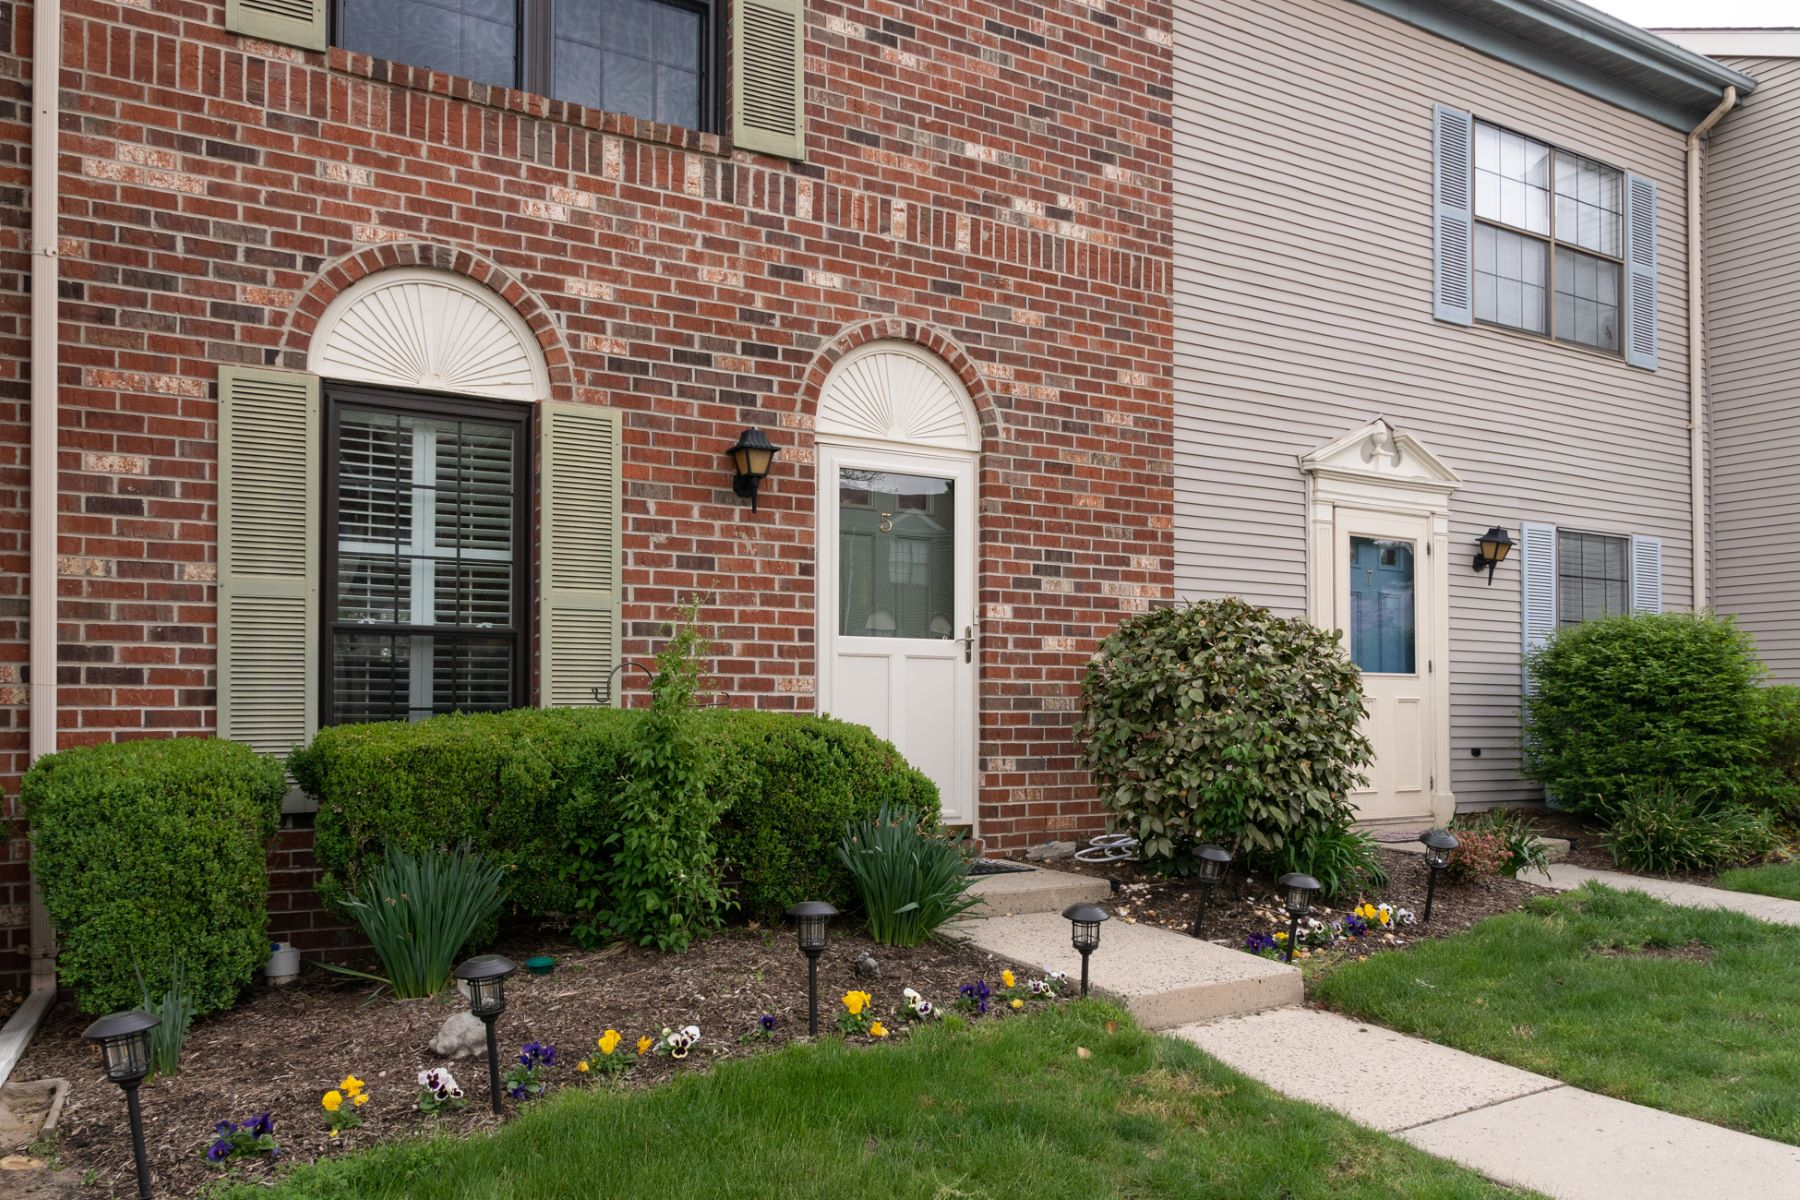 Townhouse for Sale at Terrific Townhouse 5 Van Buren Place, Lawrenceville, New Jersey 08648 United States